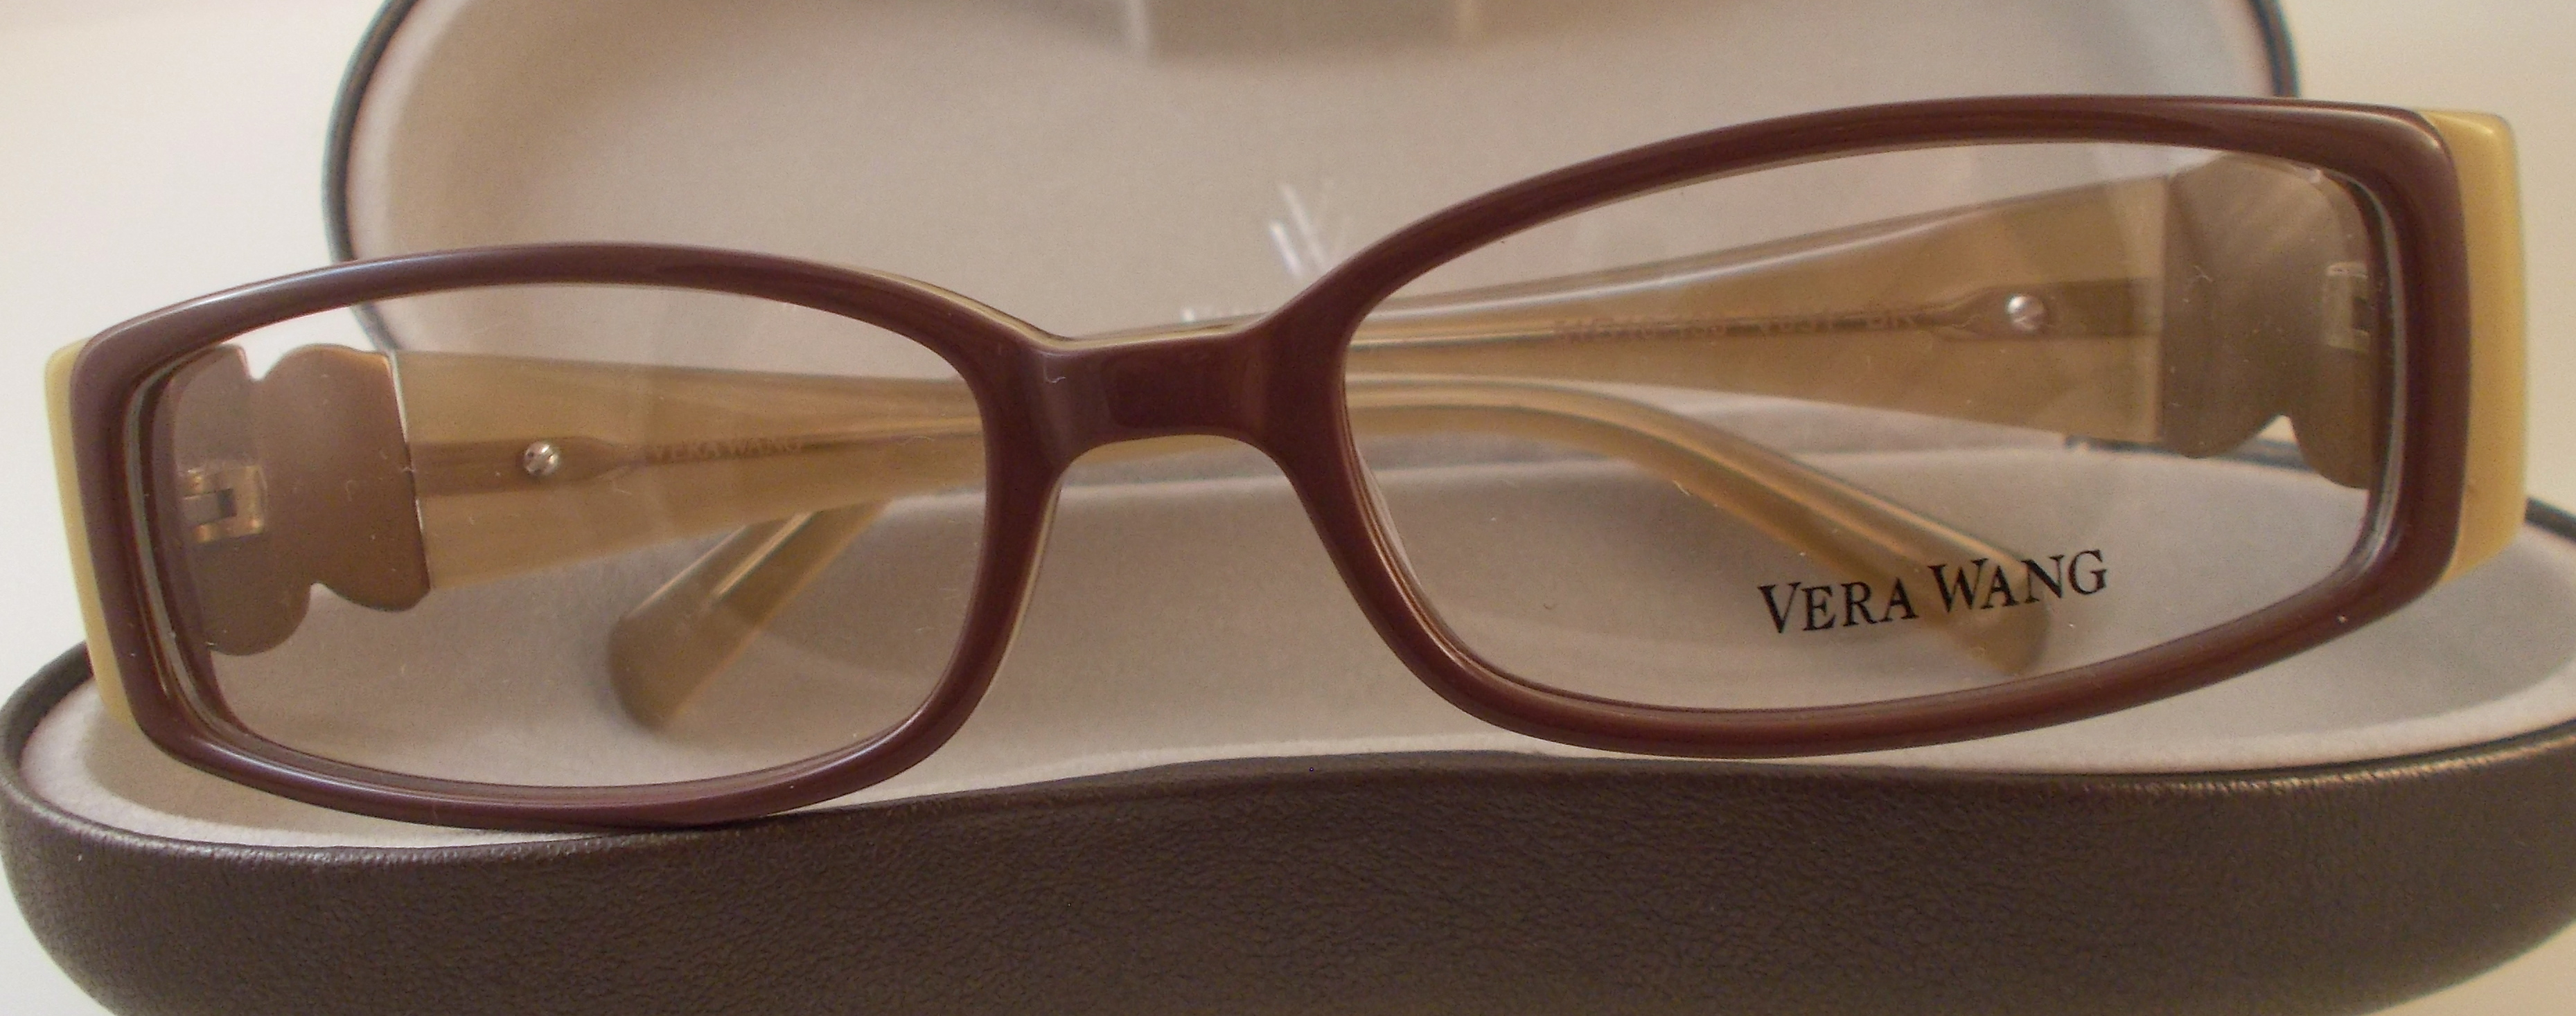 vera wang v031 eyewear brown 5116130mm thumbnail 1